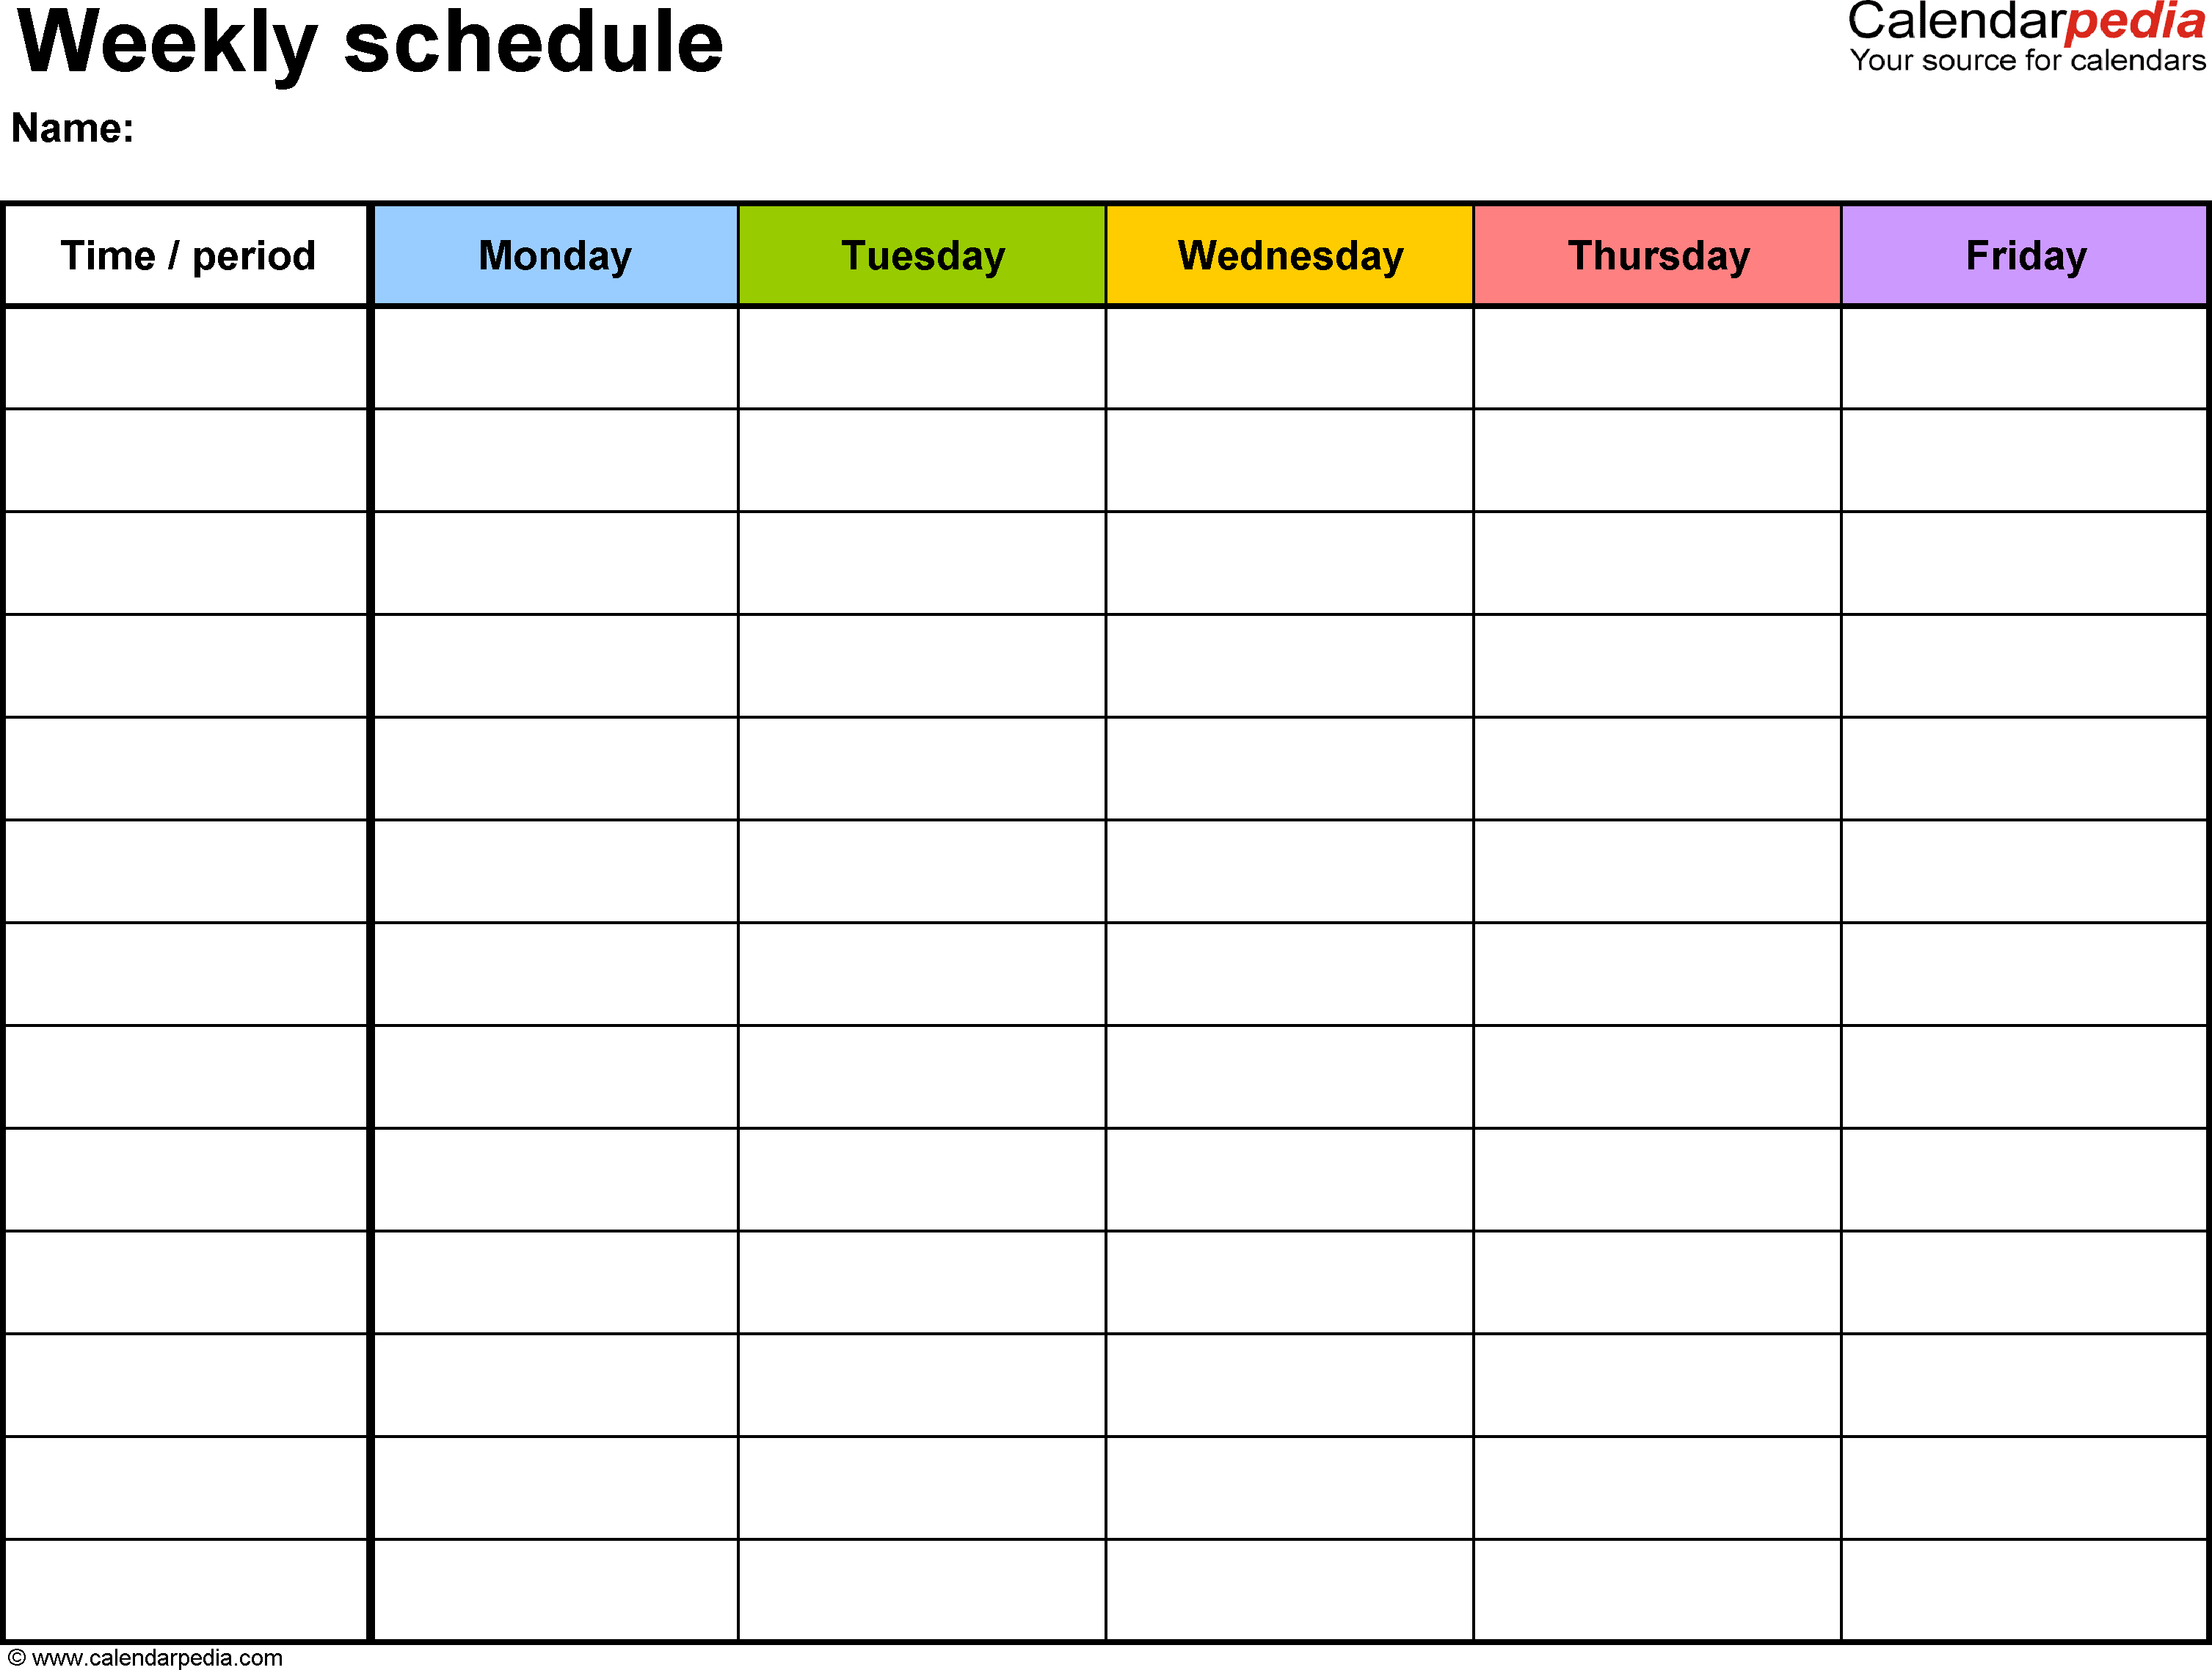 Free Weekly Schedule Templates For Word - 18 Templates in Free Template For Weekly Schedule